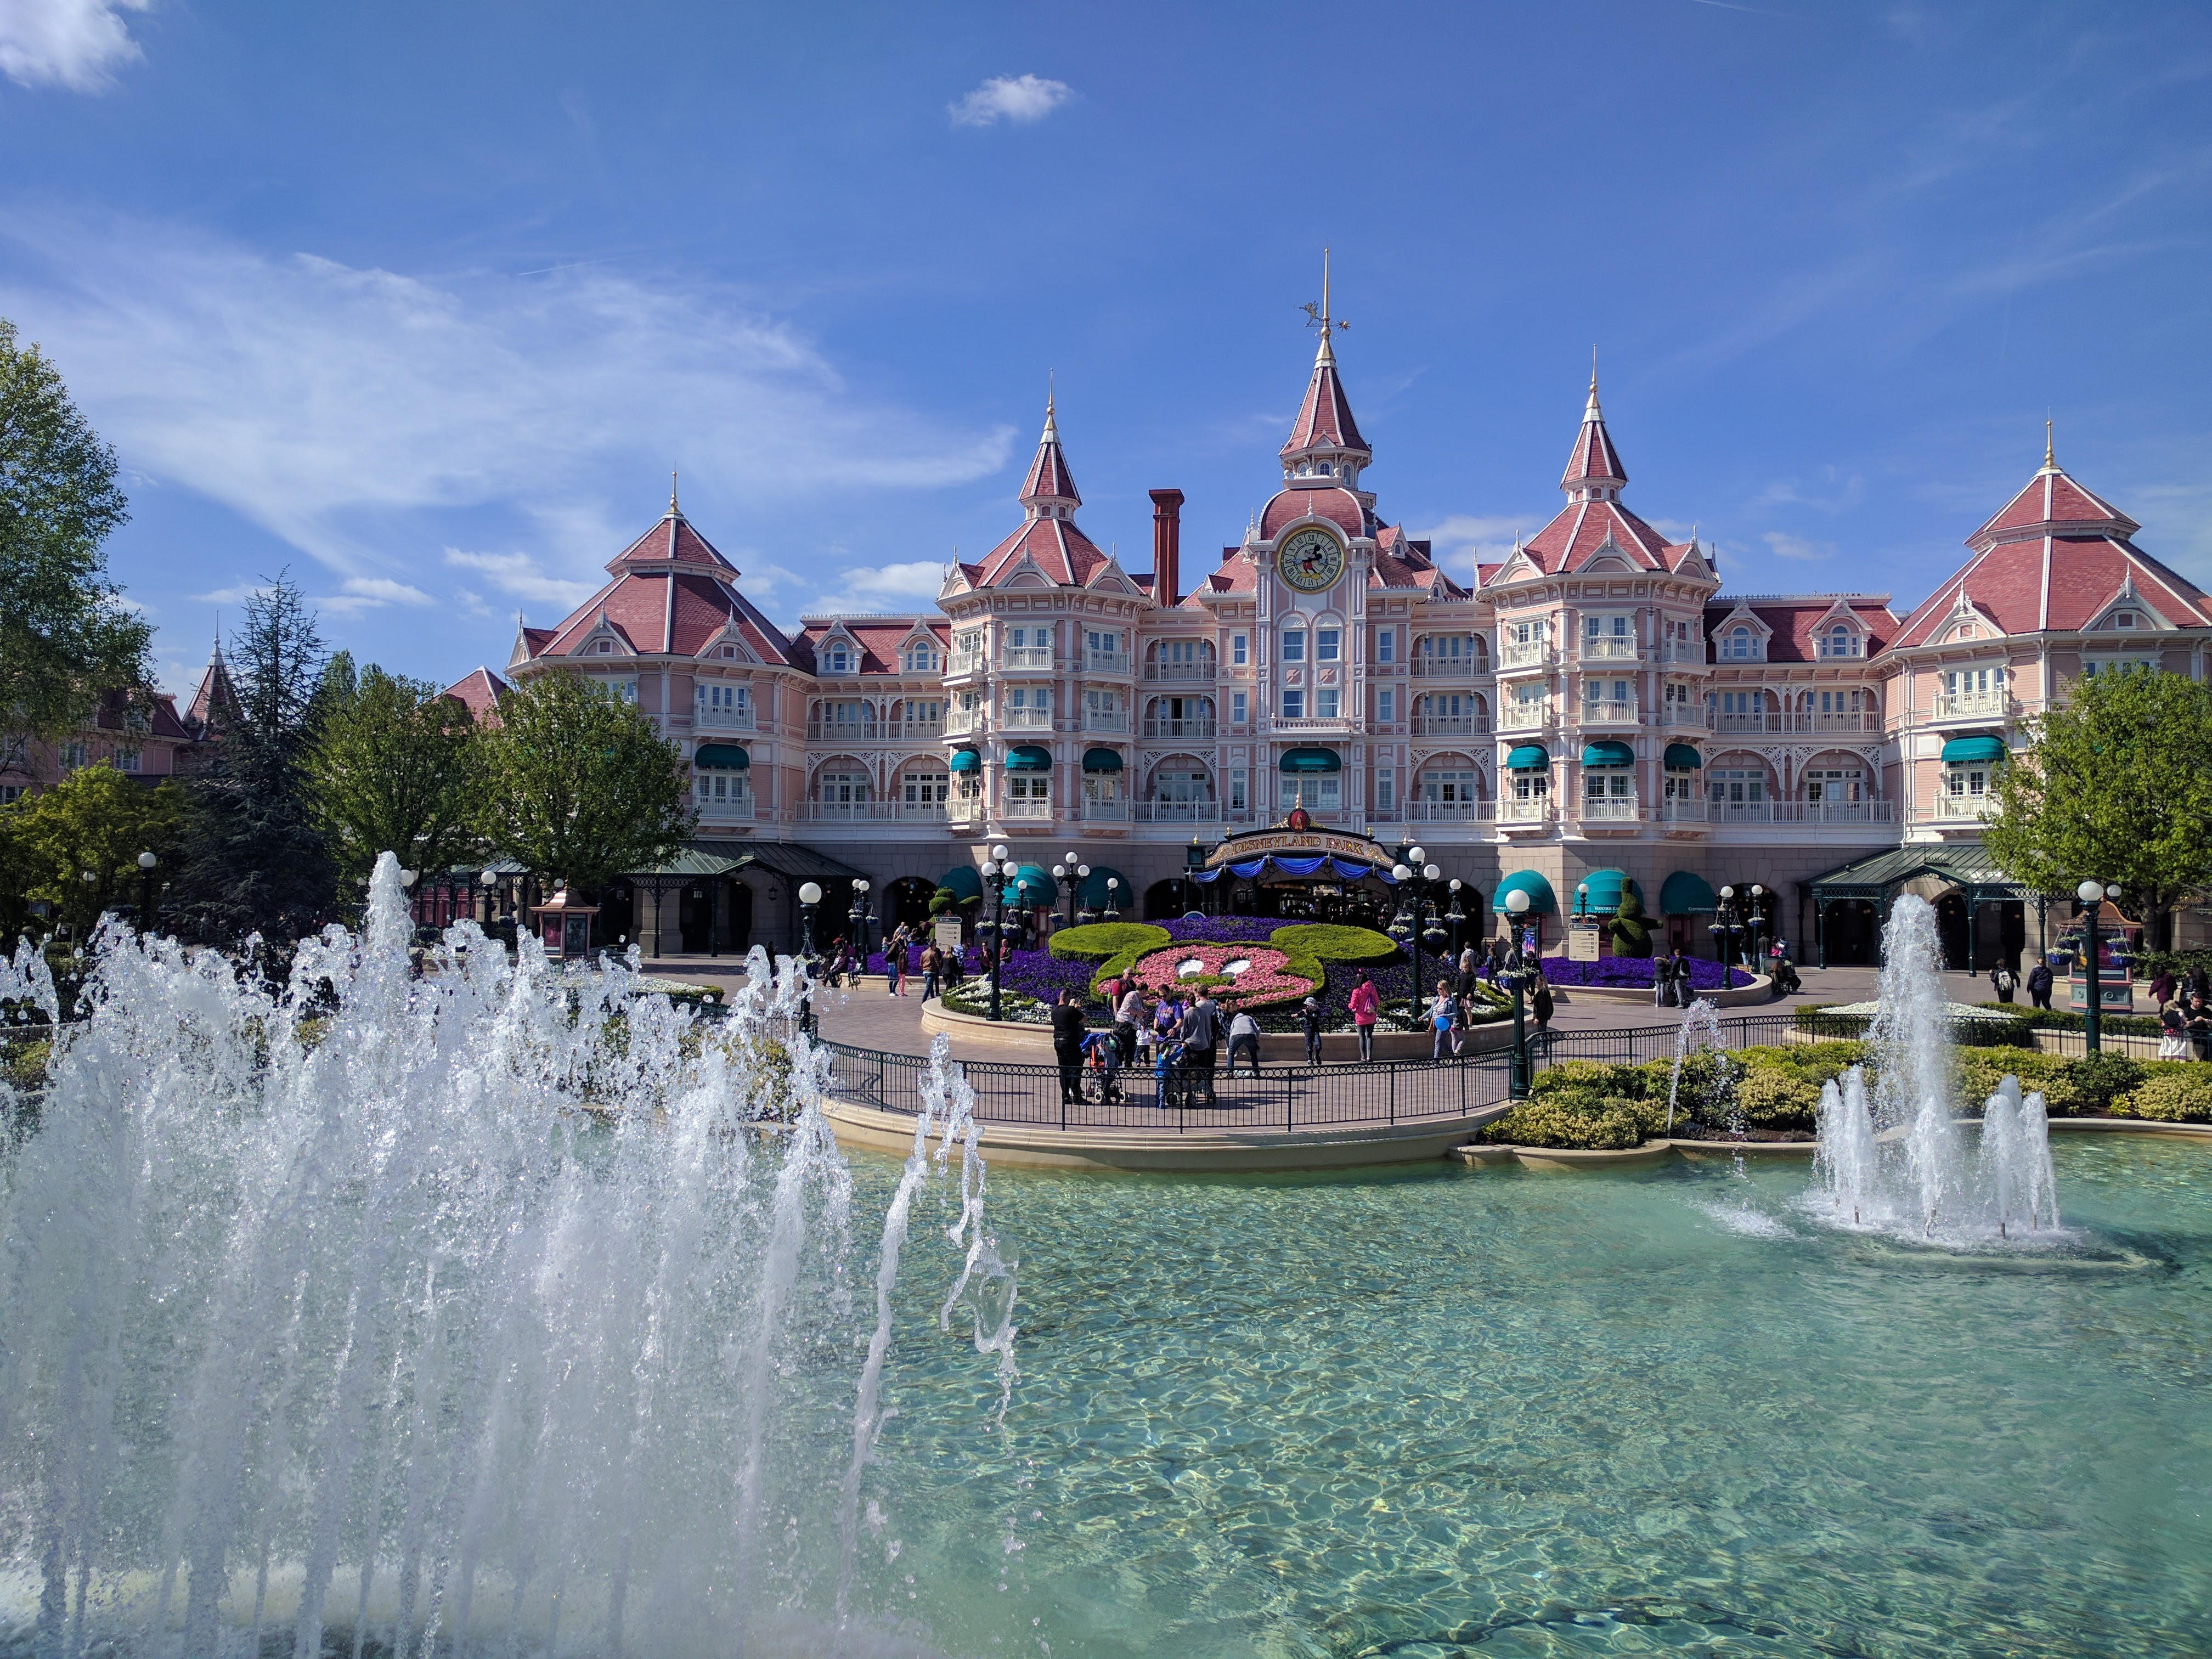 Disneyland Paris - Disneyland Hotel